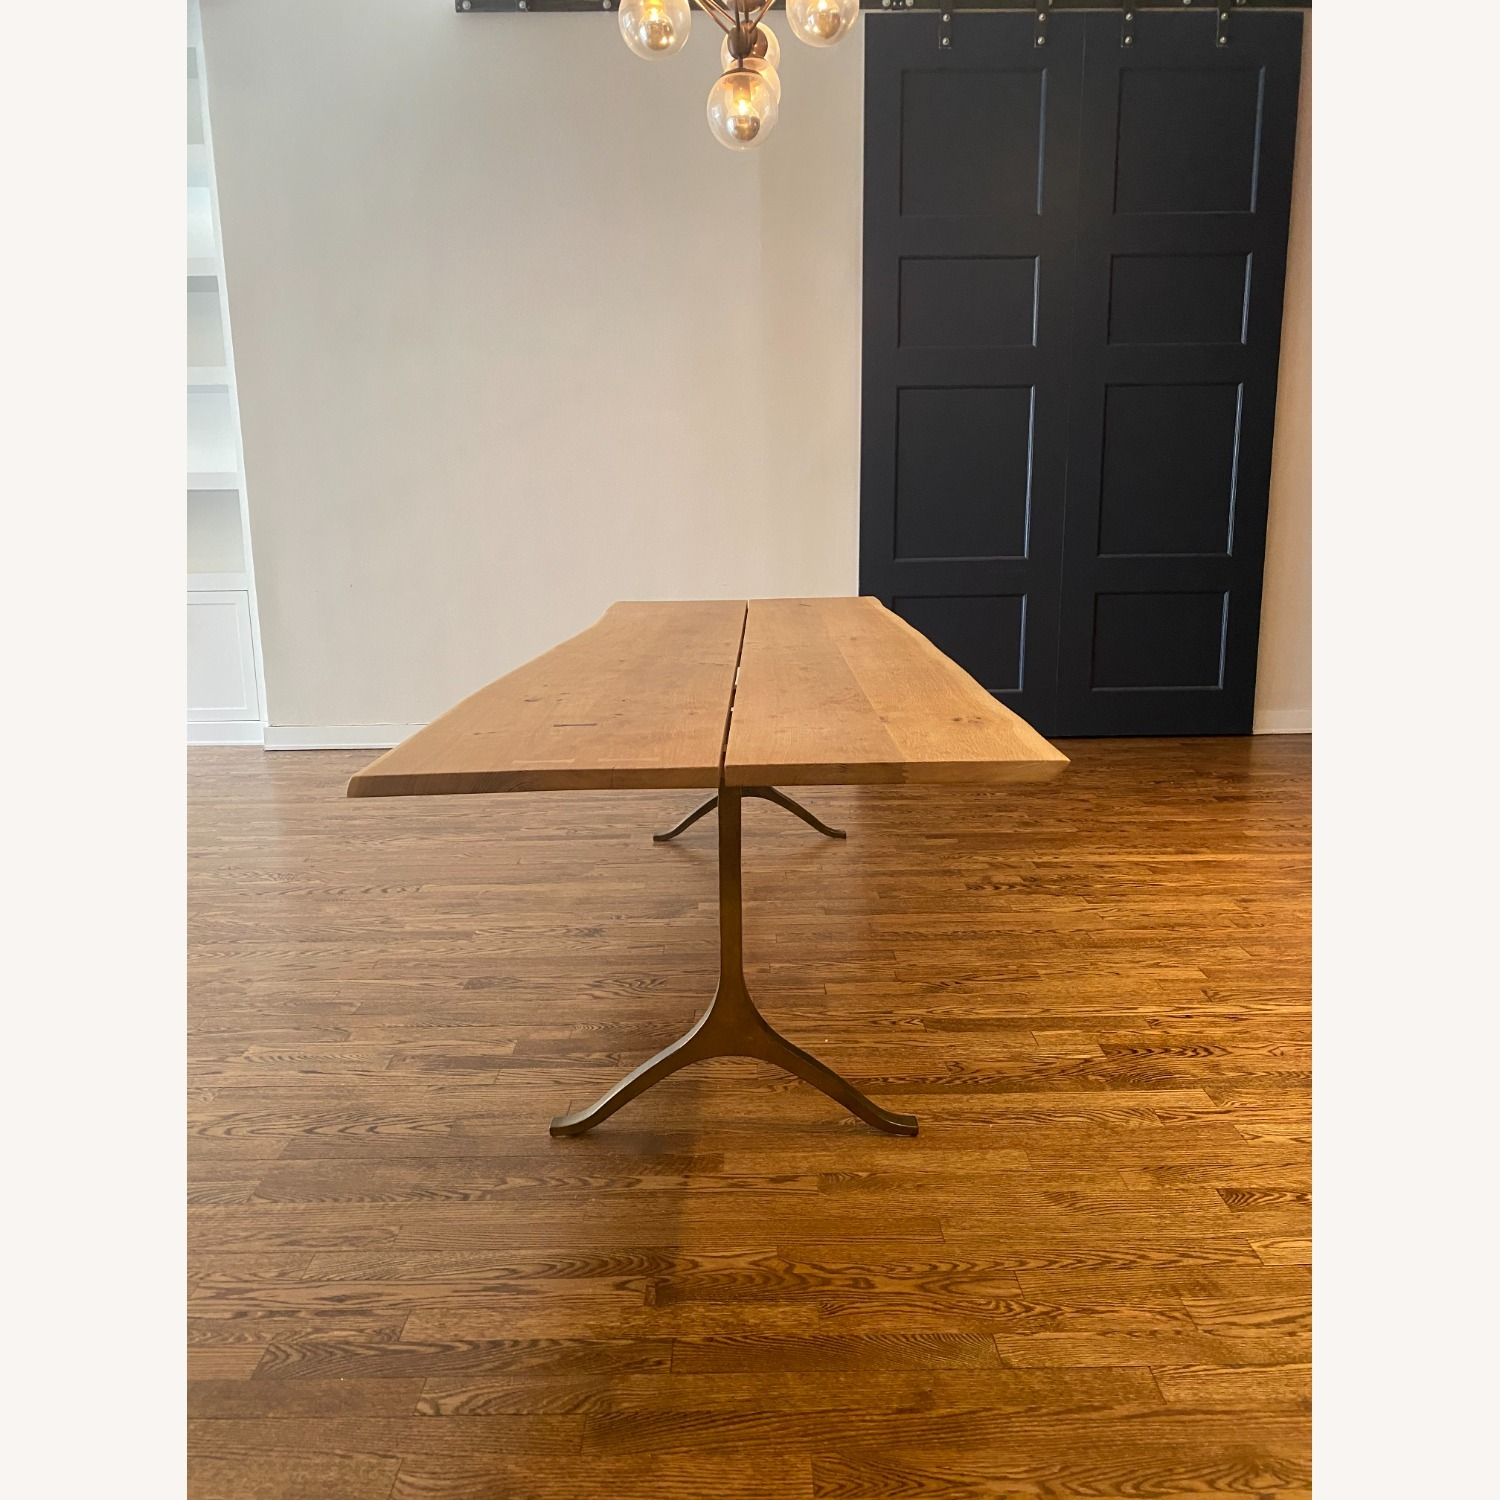 Anthropologie Oak and Brass Live Edge Dining Table - image-3